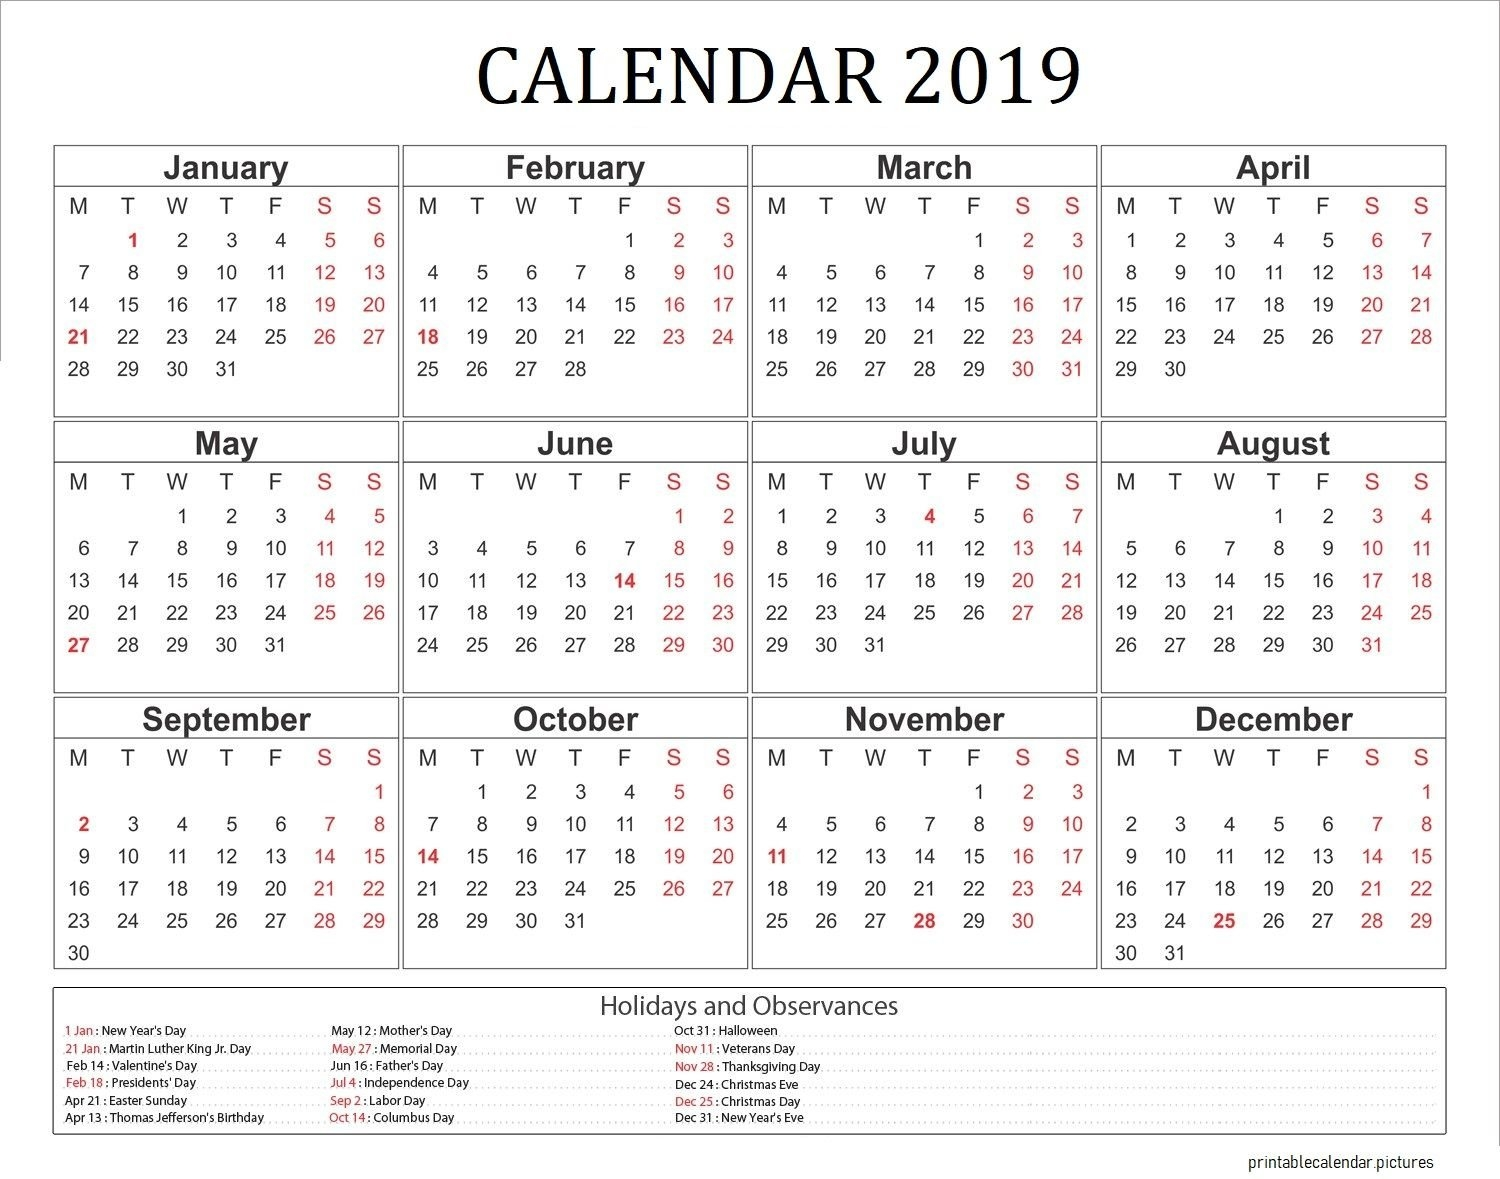 2019 Calendar With Holidays Usa | 2019 Calendar Holidays | Pinterest Calendar 2019 With Holidays Usa